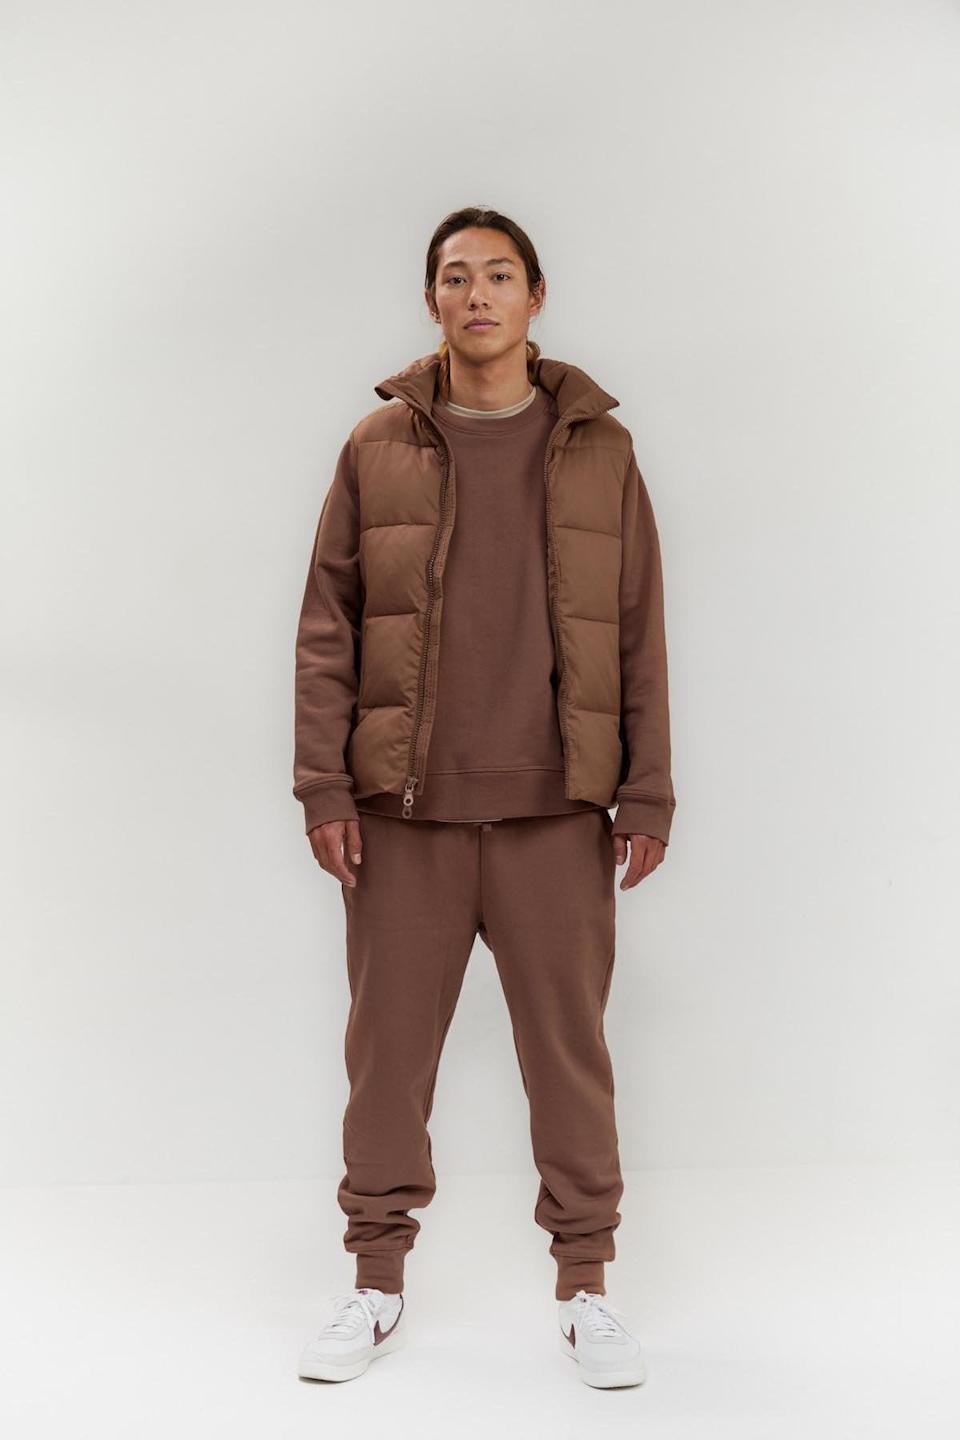 """<h2>Girlfriend Collective Everyone Puffer Vest<br></h2><br><strong>Why It's A Best Buy: </strong>This Shopping writer has been living in a puffy vest for the last few weeks — on more temperate days, the layer can fly solo, and when temperatures plummet, it provides an extra boost of warmth. I'm seriously, <em>seriously</em> eyeing Girlfriend Collective's new gender-neutral style to add to my puffer collection.<br><br><strong>The Review:</strong> OK, this vest literally launched <em>yesterday</em> — so it has yet to accrue the glowing accolades of Girlfriend Collective's other beloved workout and loungewear staples. However, here's more news you can use to inform your purchase: like everything in the brand's collection, the puffer is made from a polyester that's created entirely from plastic bottles, <em>and</em> Girlfriend will recycle the puffer when you decided to take it out of the rotation — not like that's going to happen anytime soon.<br><br><strong>Girlfriend Collective</strong> Coffee Everyone Puffer Vest, $, available at <a href=""""https://go.skimresources.com/?id=30283X879131&url=https%3A%2F%2Fwww.girlfriend.com%2Fcollections%2Ffor-everyone%2Fproducts%2Fcoffee-everyone-puffer-vest"""" rel=""""nofollow noopener"""" target=""""_blank"""" data-ylk=""""slk:Girlfriend Collective"""" class=""""link rapid-noclick-resp"""">Girlfriend Collective</a>"""